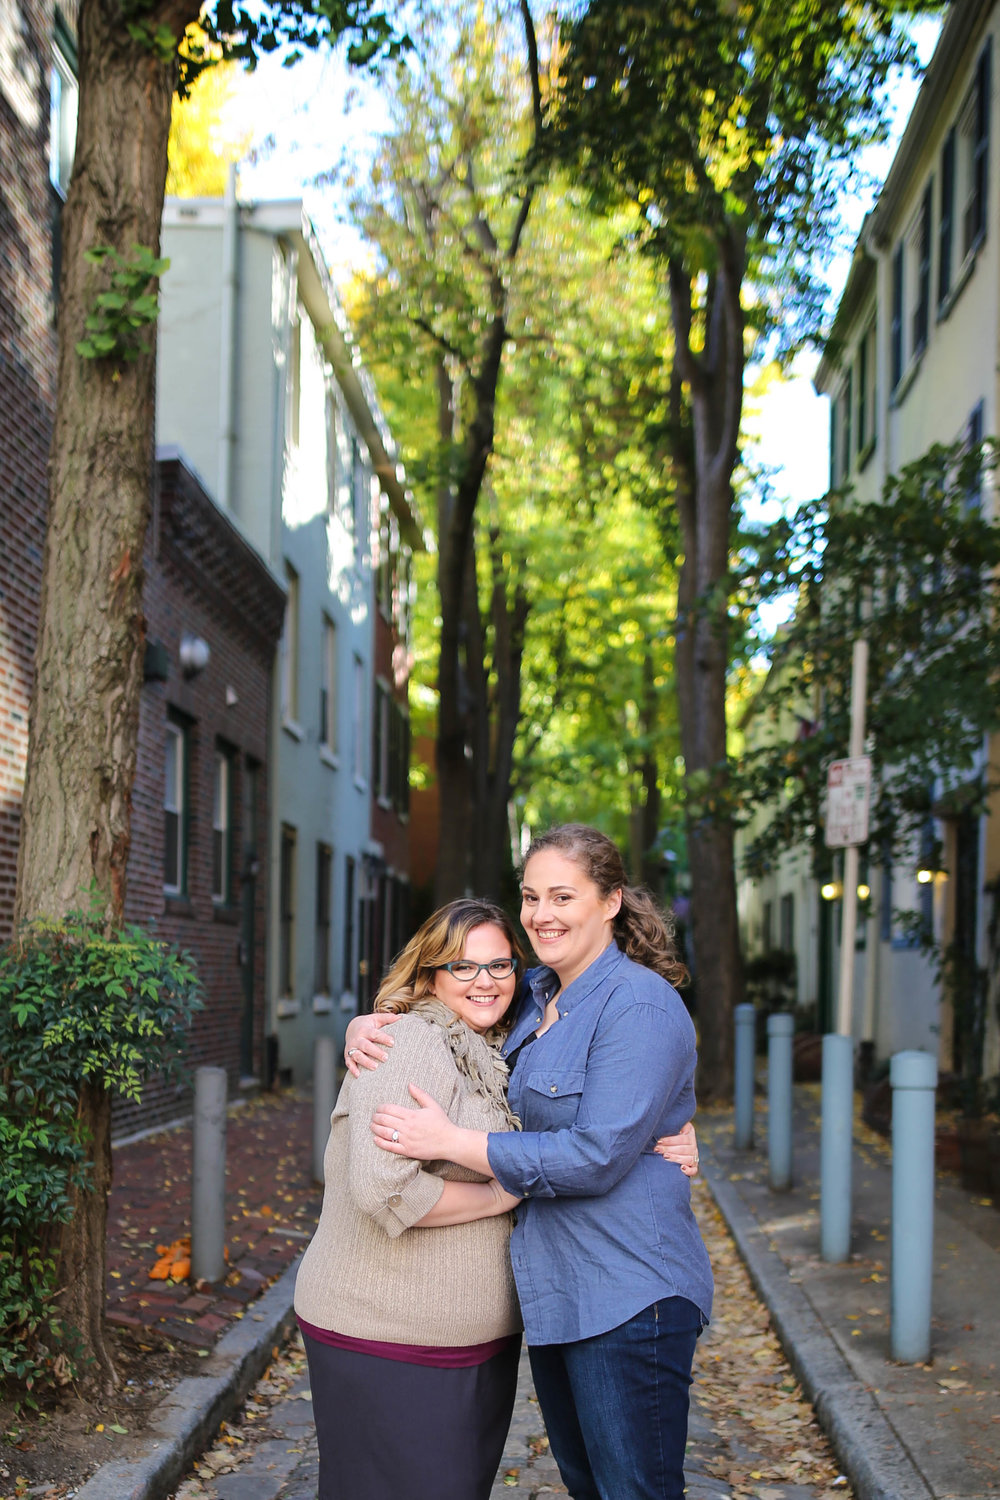 For Mary and Arielle's engagement session, we walked around some of their favorite parts of center city, but we avoided the crowds by finding little side streets!